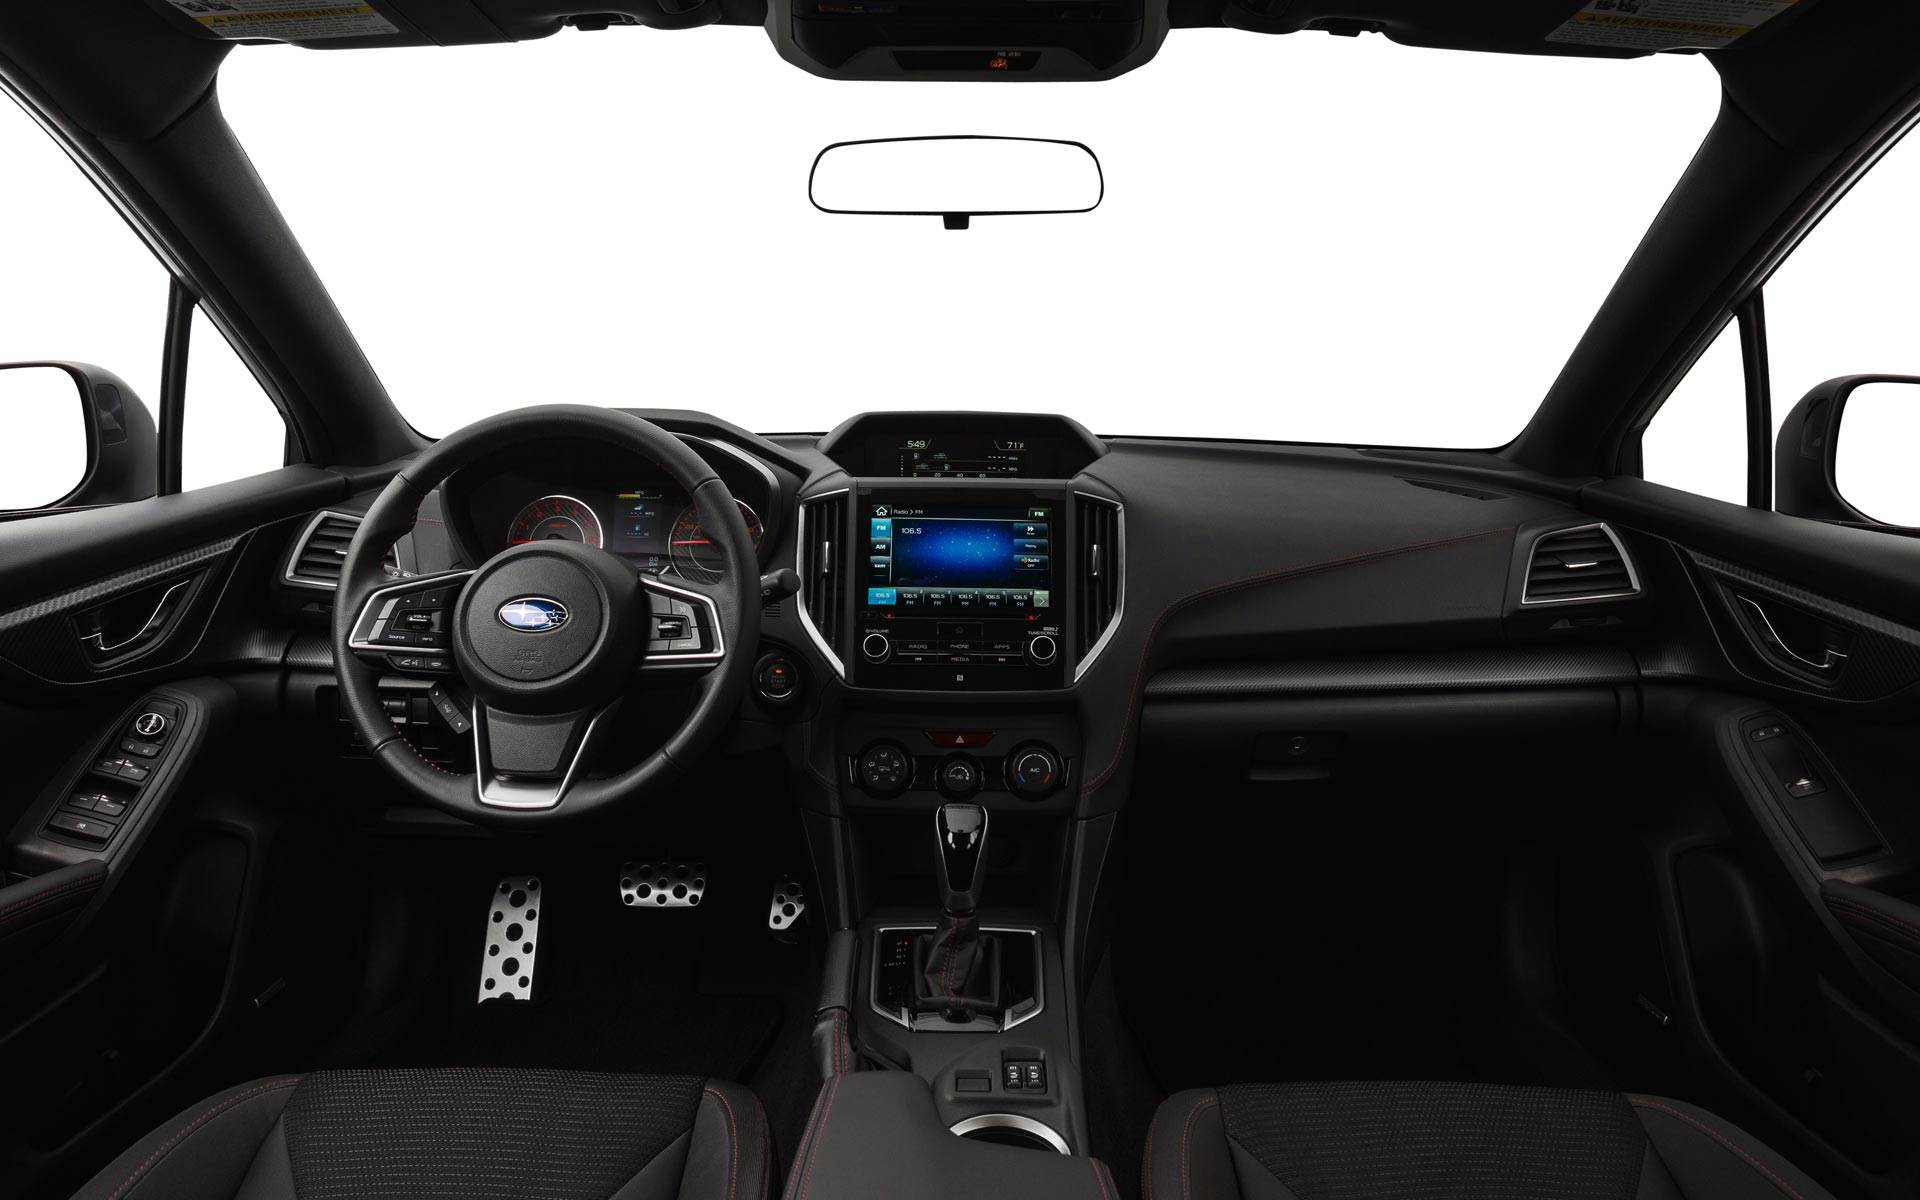 The Sport Cockpit of the Subaru Impreza